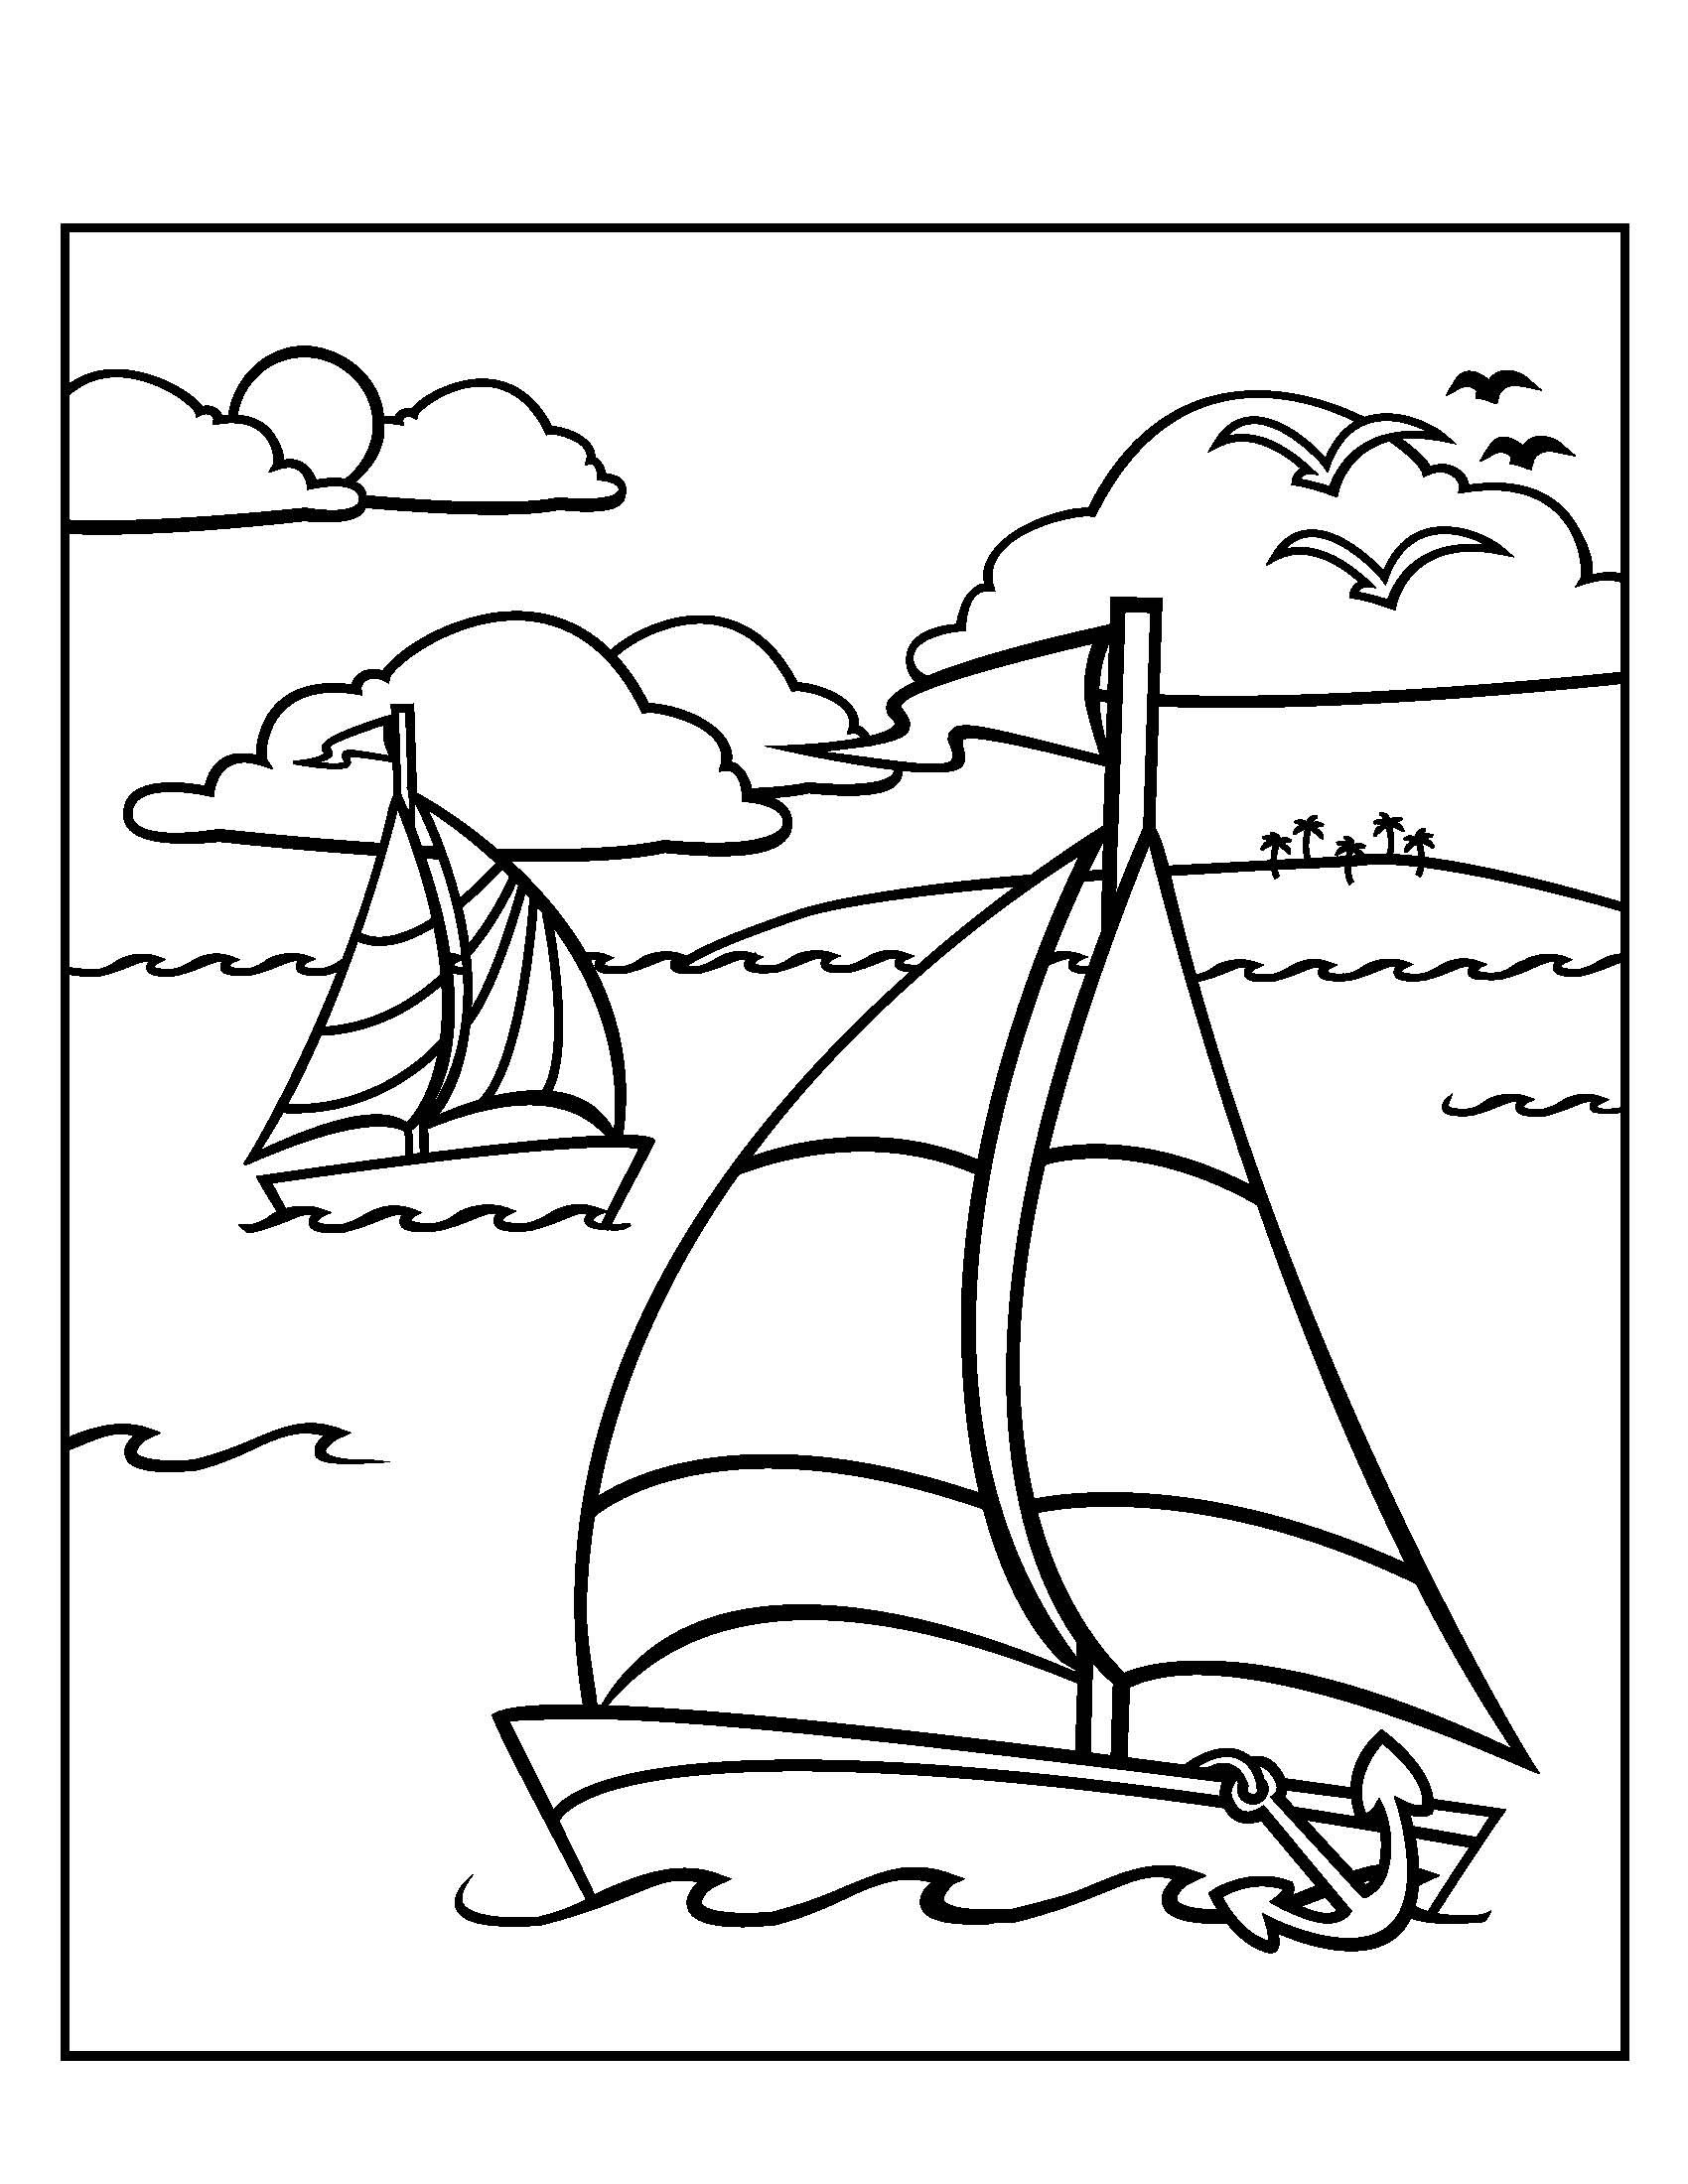 1700x2200 Elementary Coloring Pages Elementary Coloring Sheets Nicoles Free